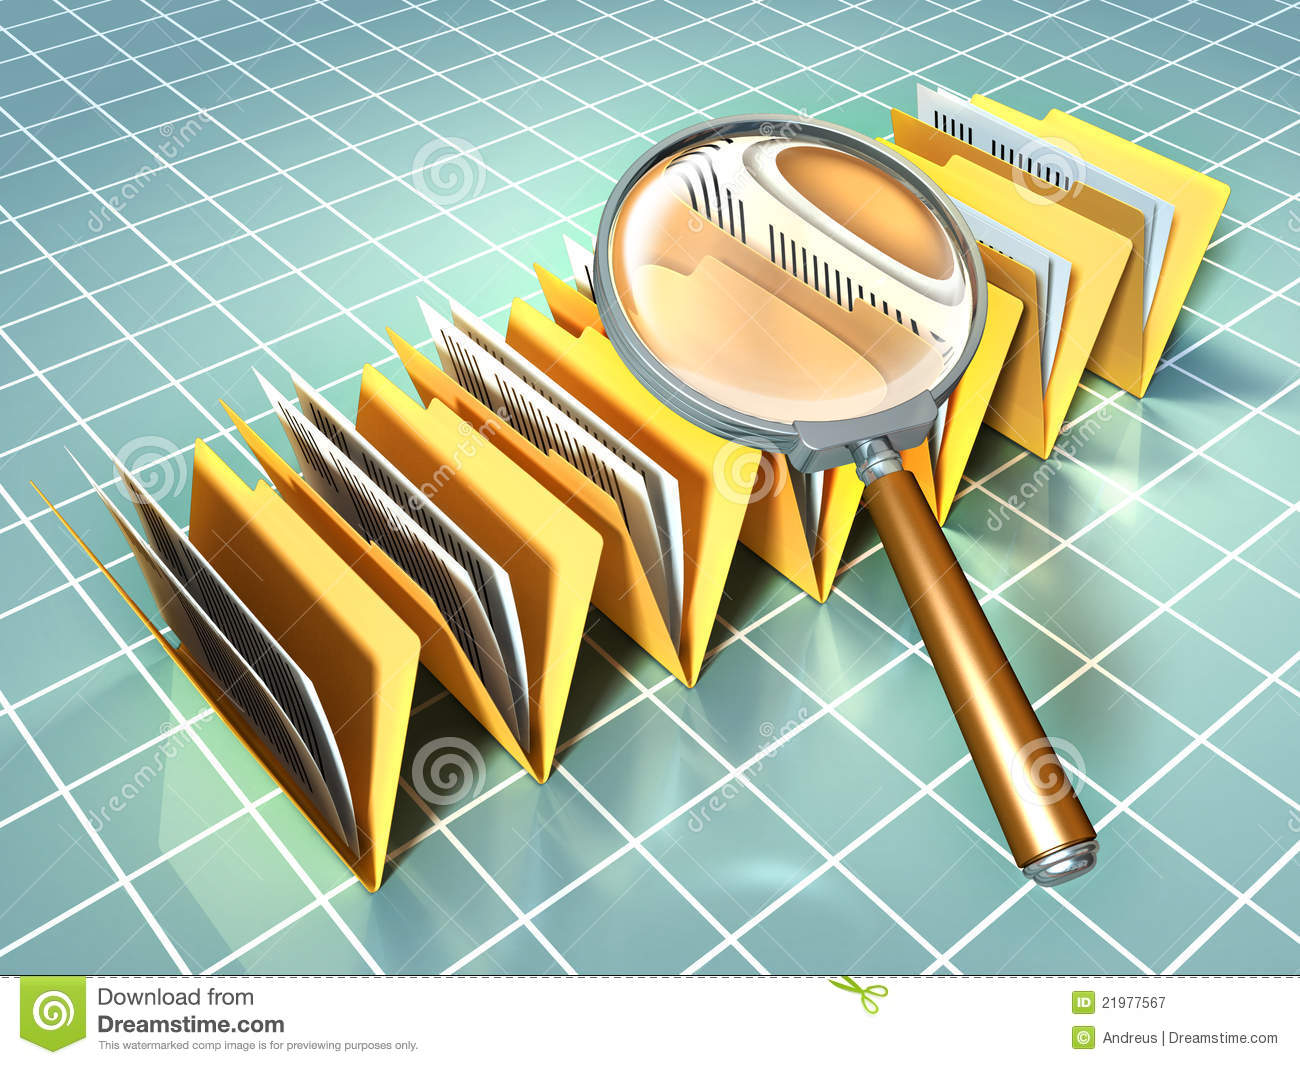 what is a document analysis